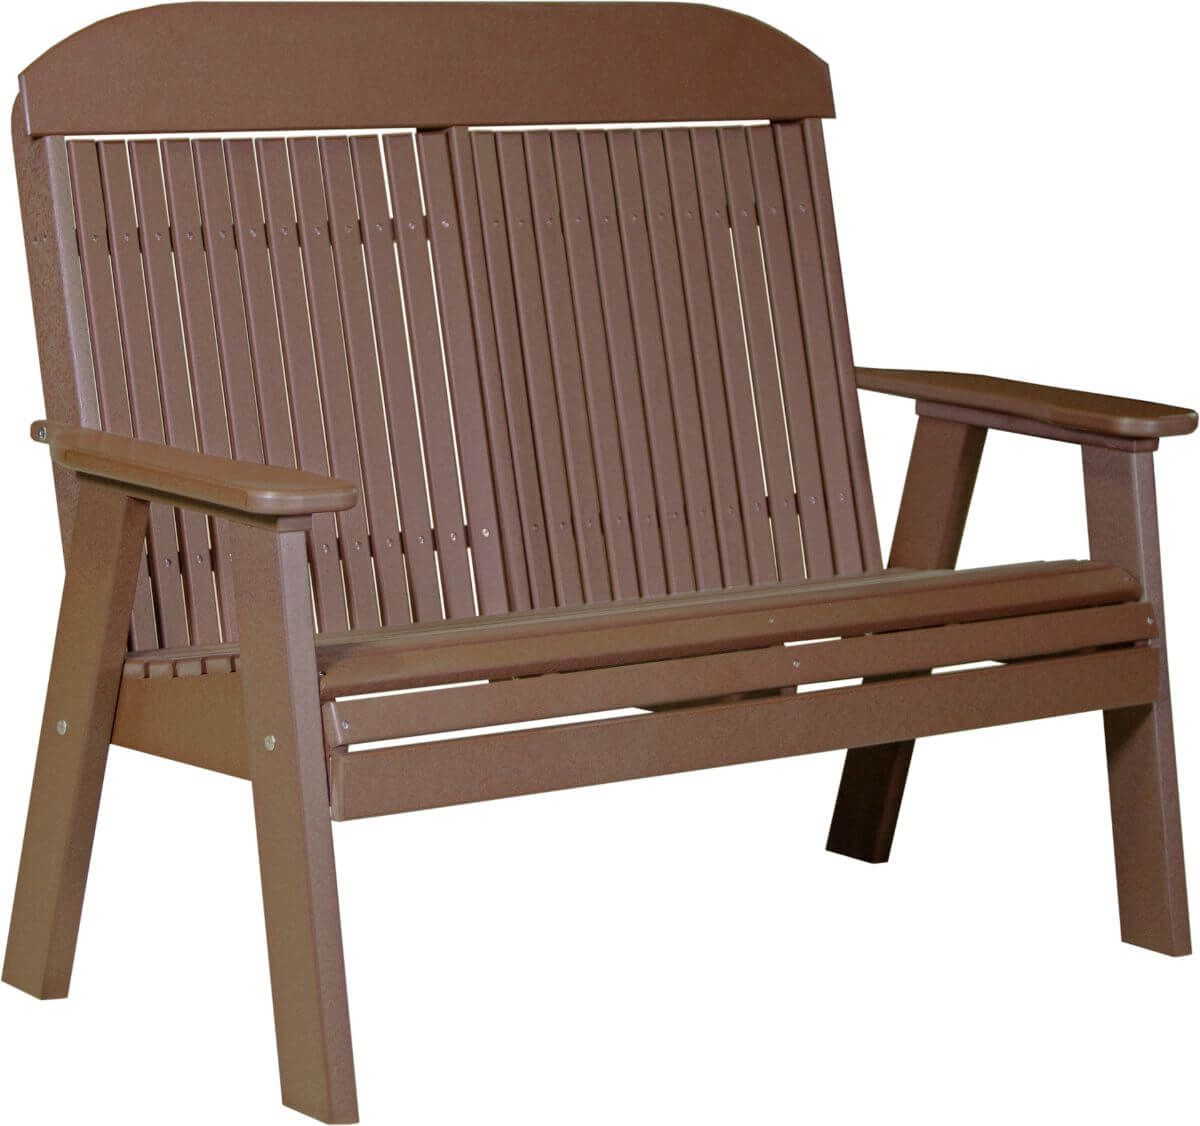 Chestnut Brown Stockton Patio Bench